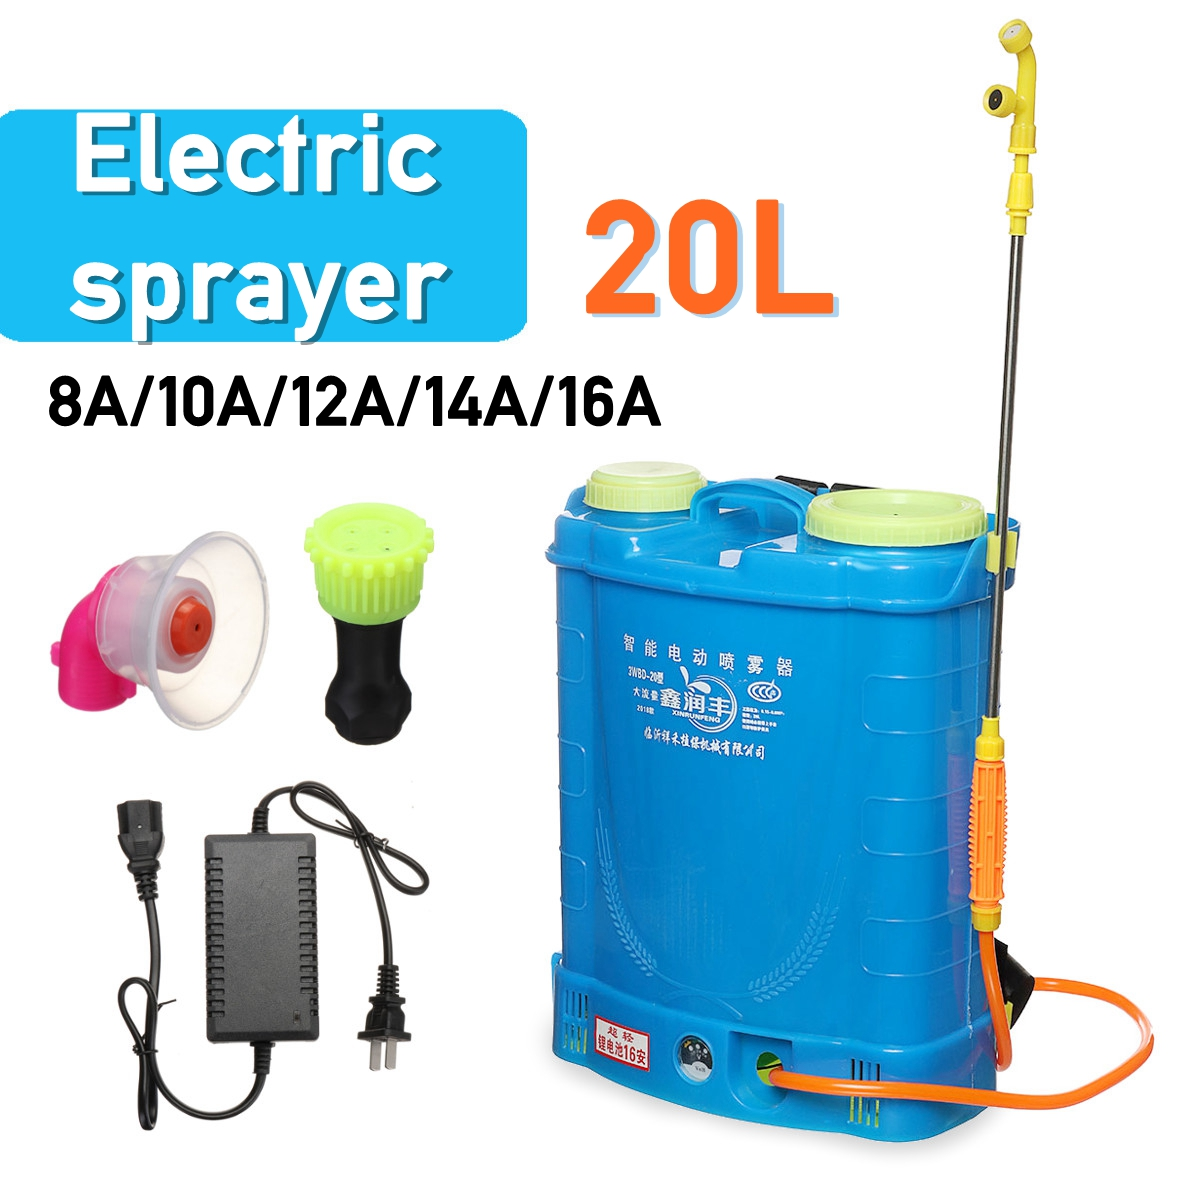 20L 8 10 12 14 16A Lithium Battery Electric sprayer Agricultural Pesticide High pressure charge dispenser